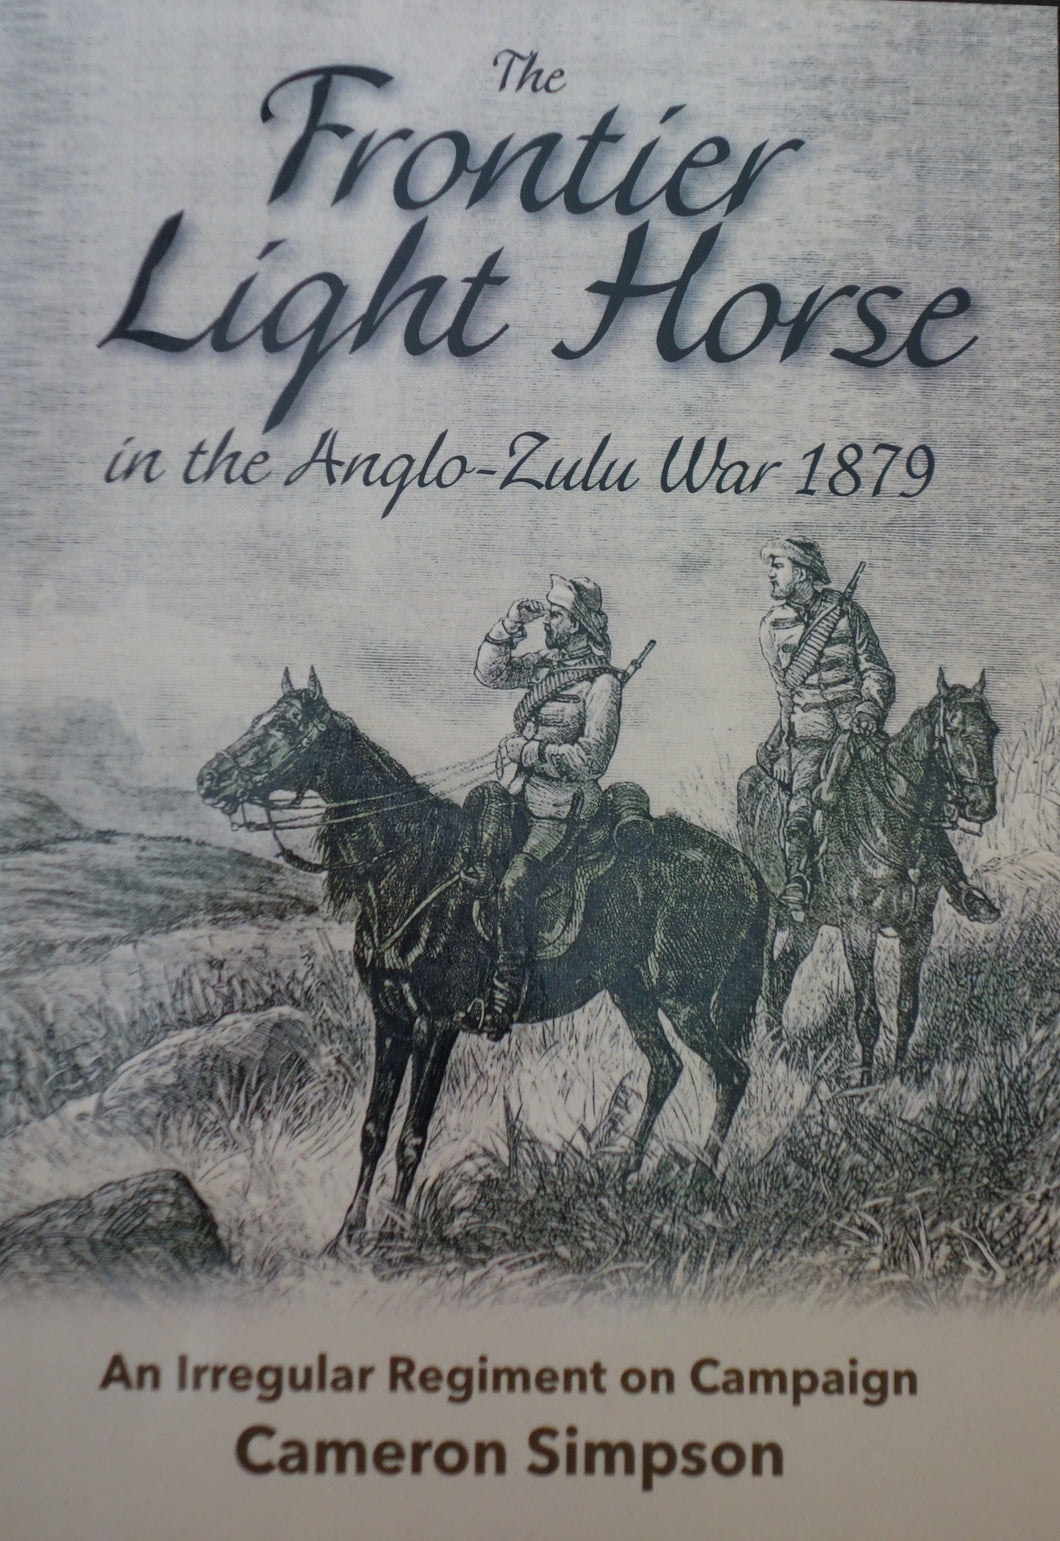 THE FRONTIER LIGHT HORSE IN THE ANGLO-ZULU WAR by Cameron Simpson